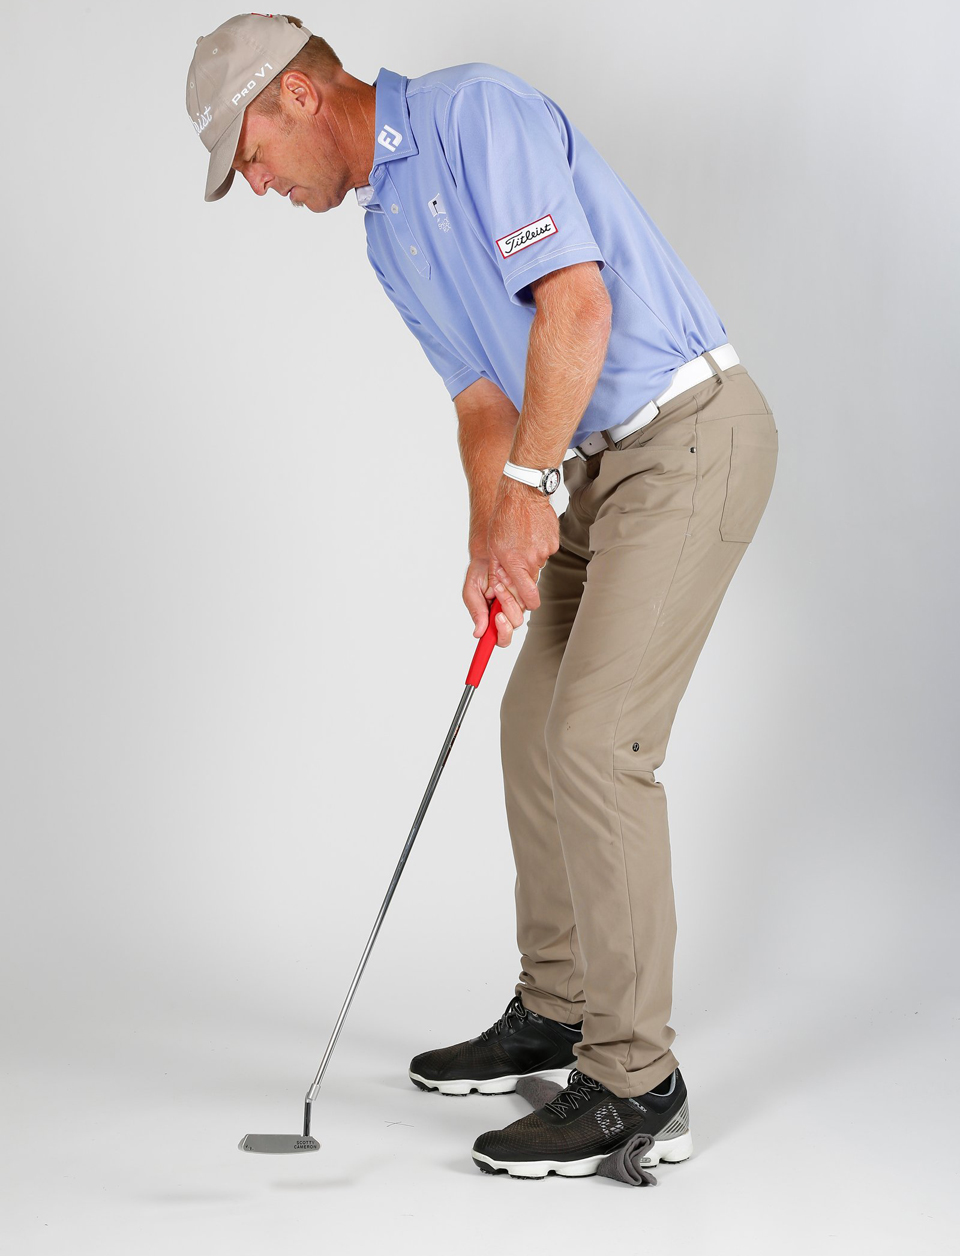 Putting while standing on a towel trains you to disassociate your upper-body movement from your lower—the key to stroke and face stability.